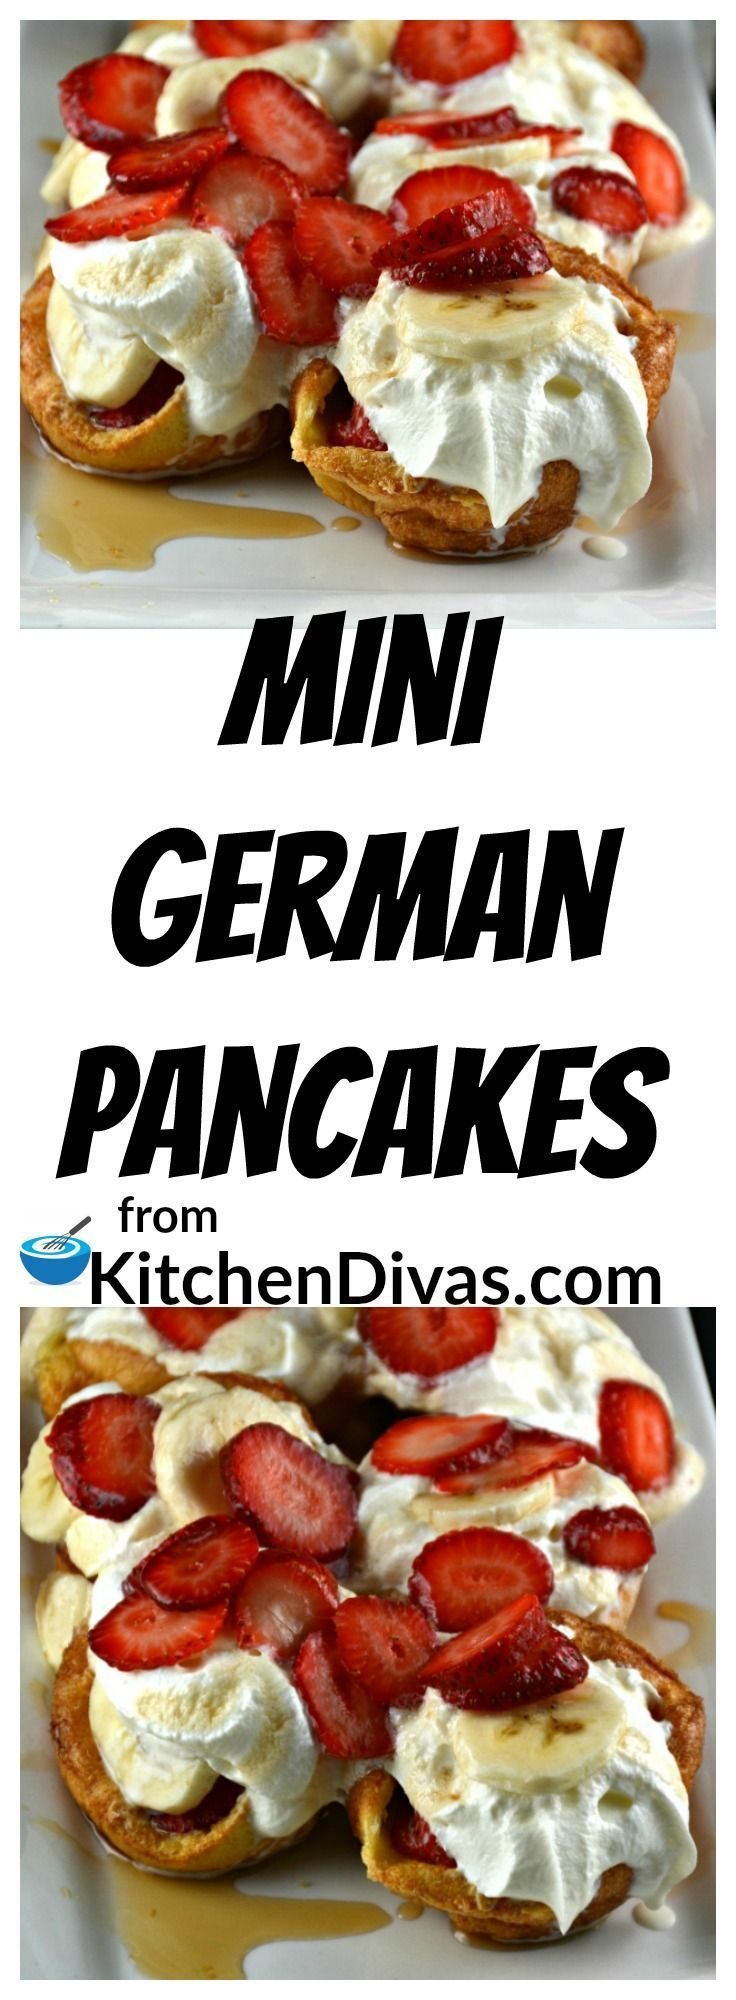 TheseMini German Pancakes are so yummy! They can be filled with anything your heart desires! Our favorite is strawberries, bananas, whipped cream and syrup! We have filled them with some nutella or chocolate chips and bananas, just chocolate chips, sausages and syrup, all kinds of different fruit and even just plain old butter and syrup. The possibilities are truly endless! That's what makes this recipe so amazing!